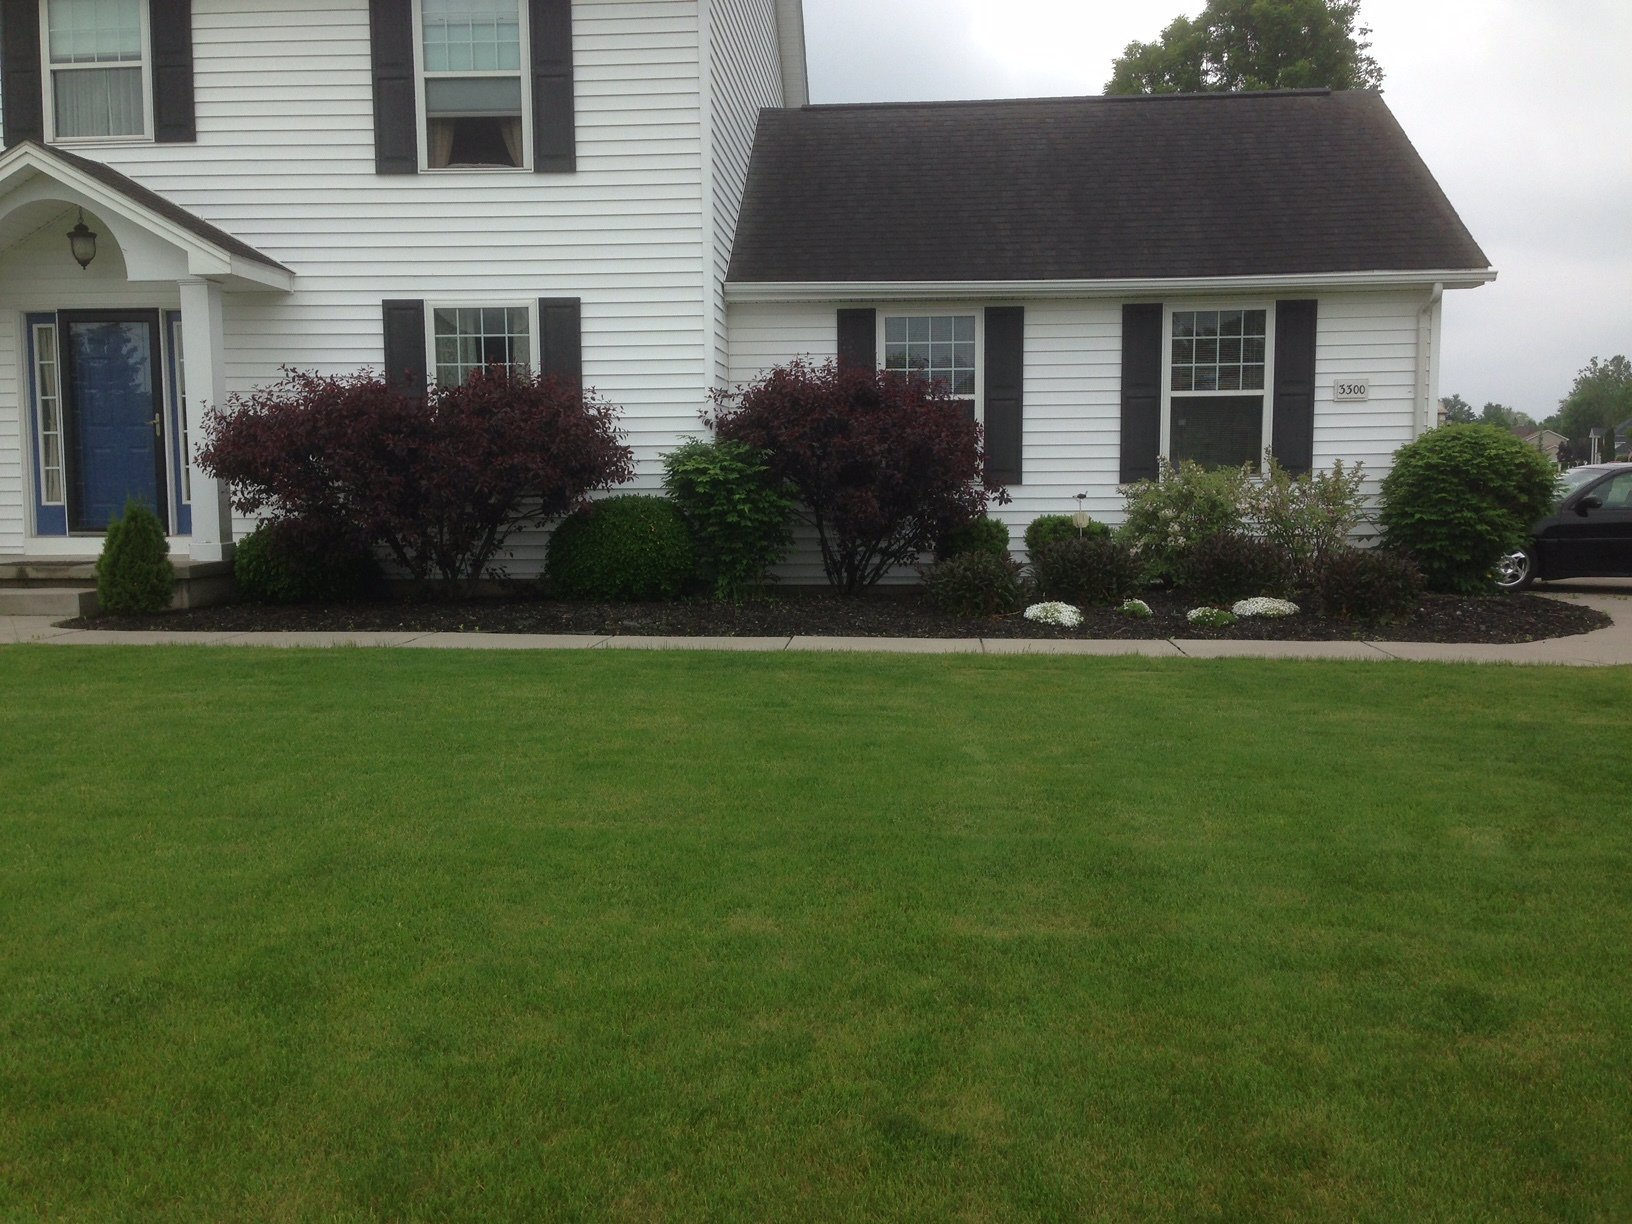 landscaping contractor in Lockport, NY